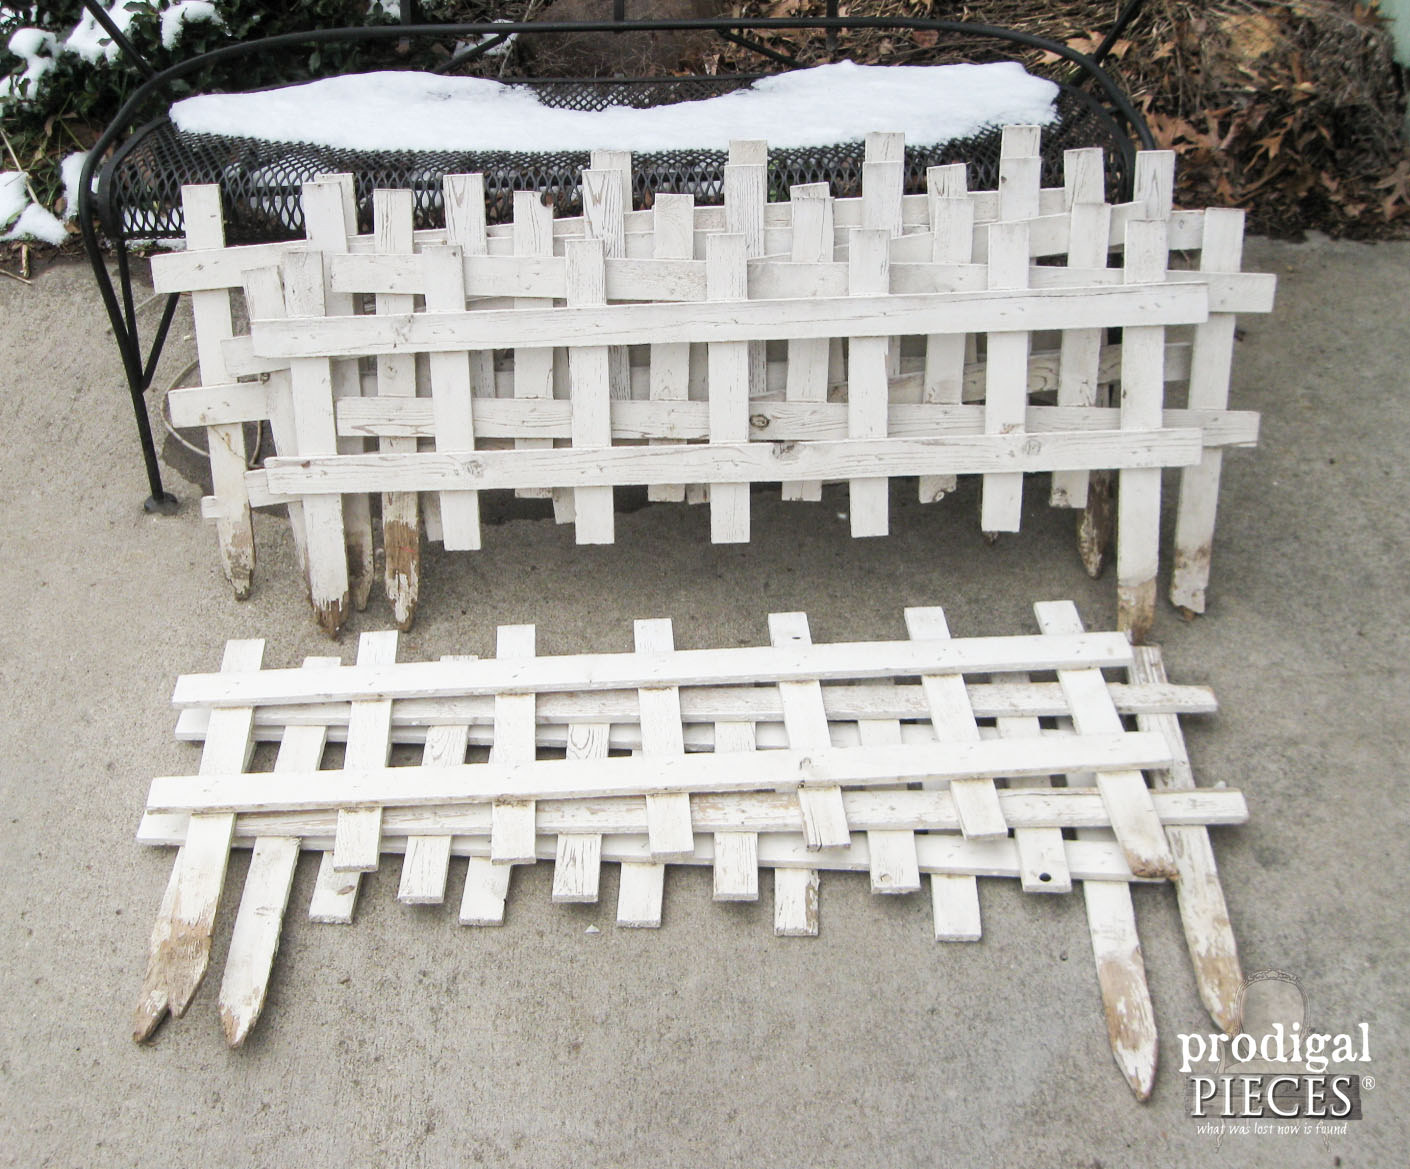 Curbside Garden Picket Fence found Curbside by Prodigal Pieces | www.prodigalpieces.com